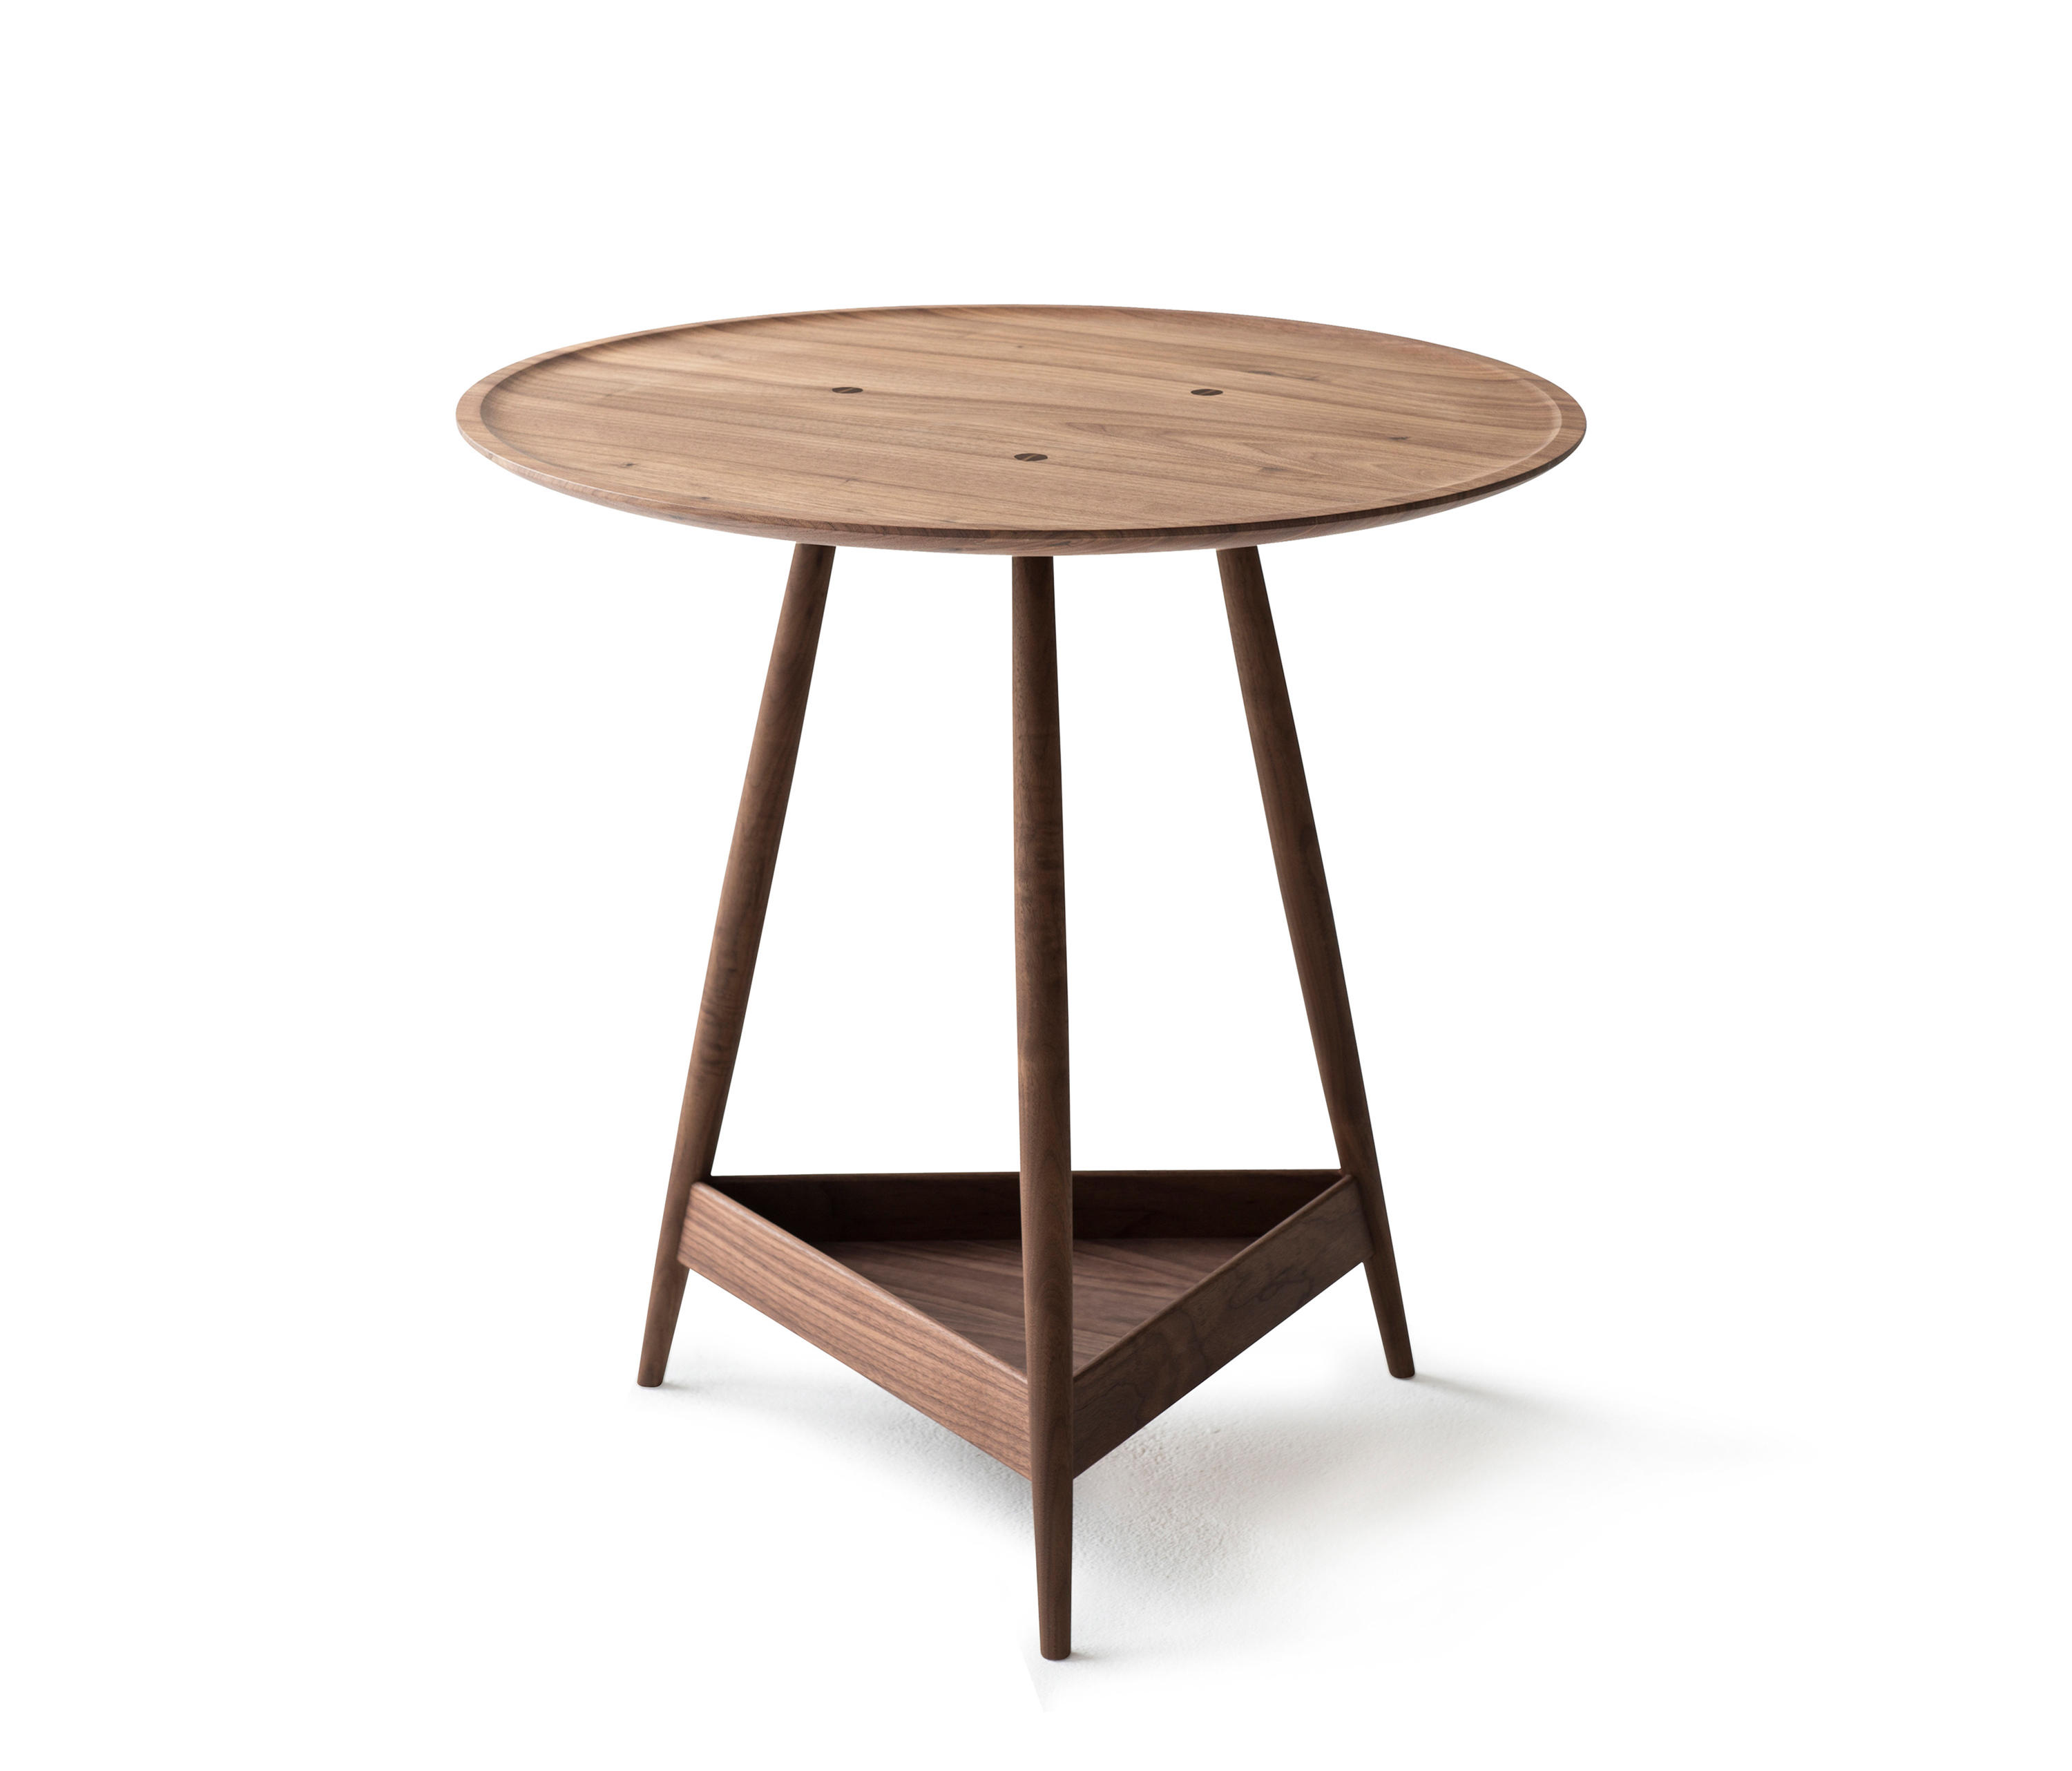 table lamp room tables solid inspiration minimalist brookhaven of natural in oak furniture living cool round